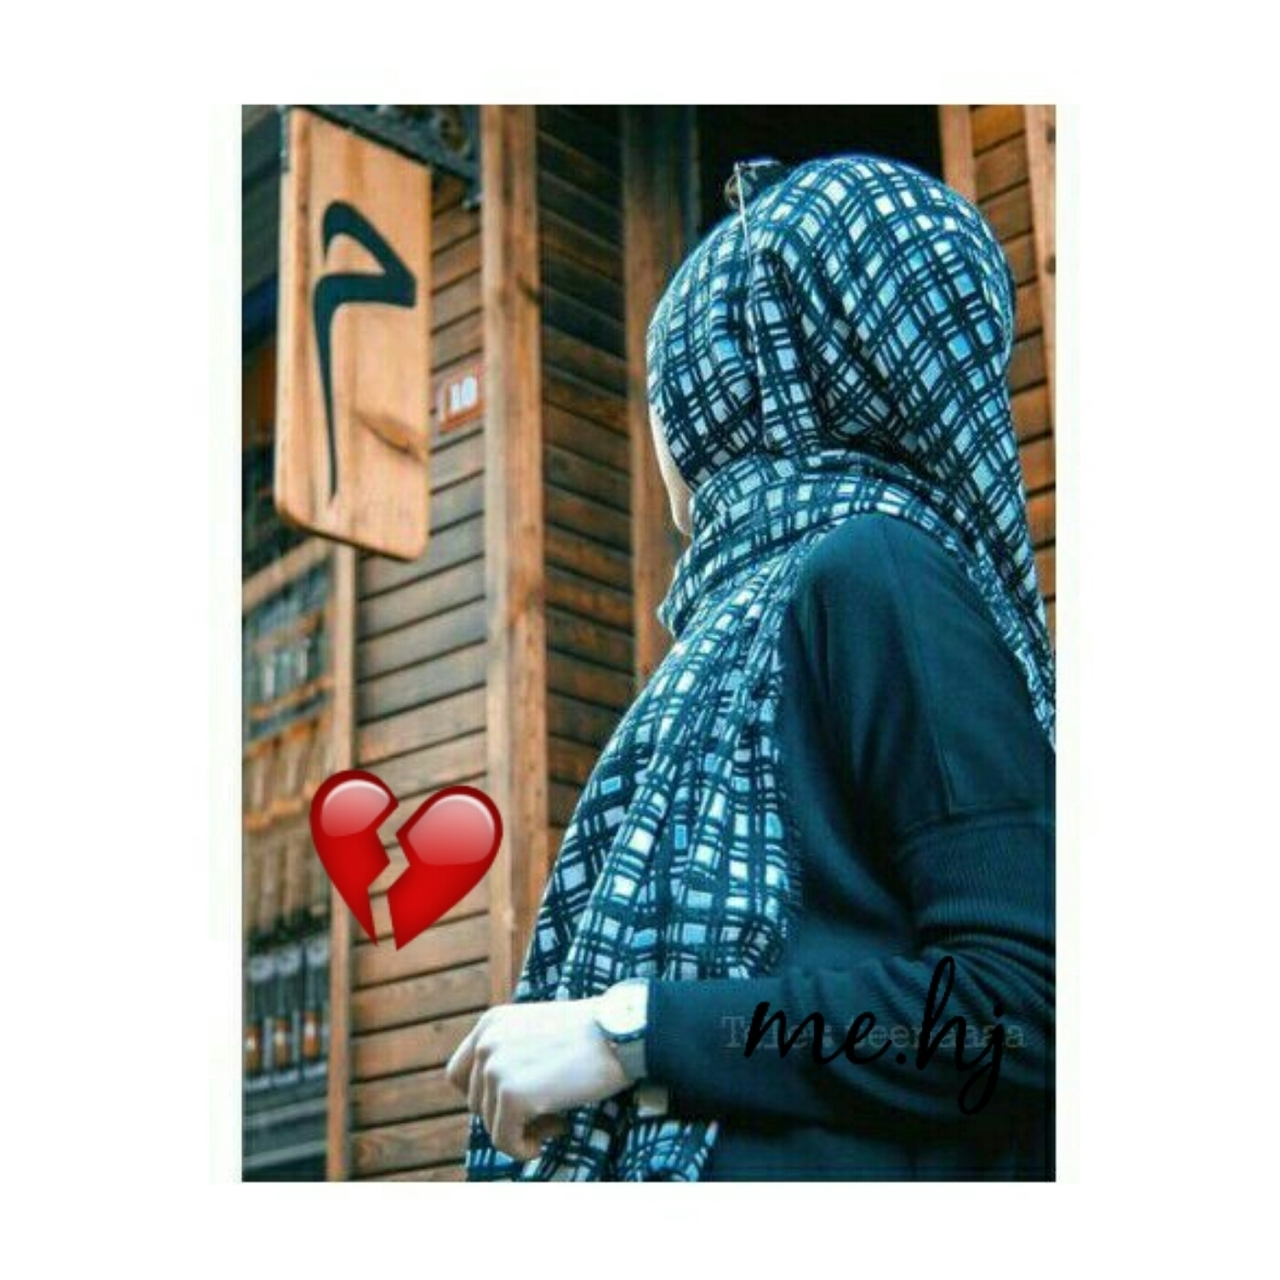 404 Images About رمــزيــات مـحـجـبــات On We Heart It See